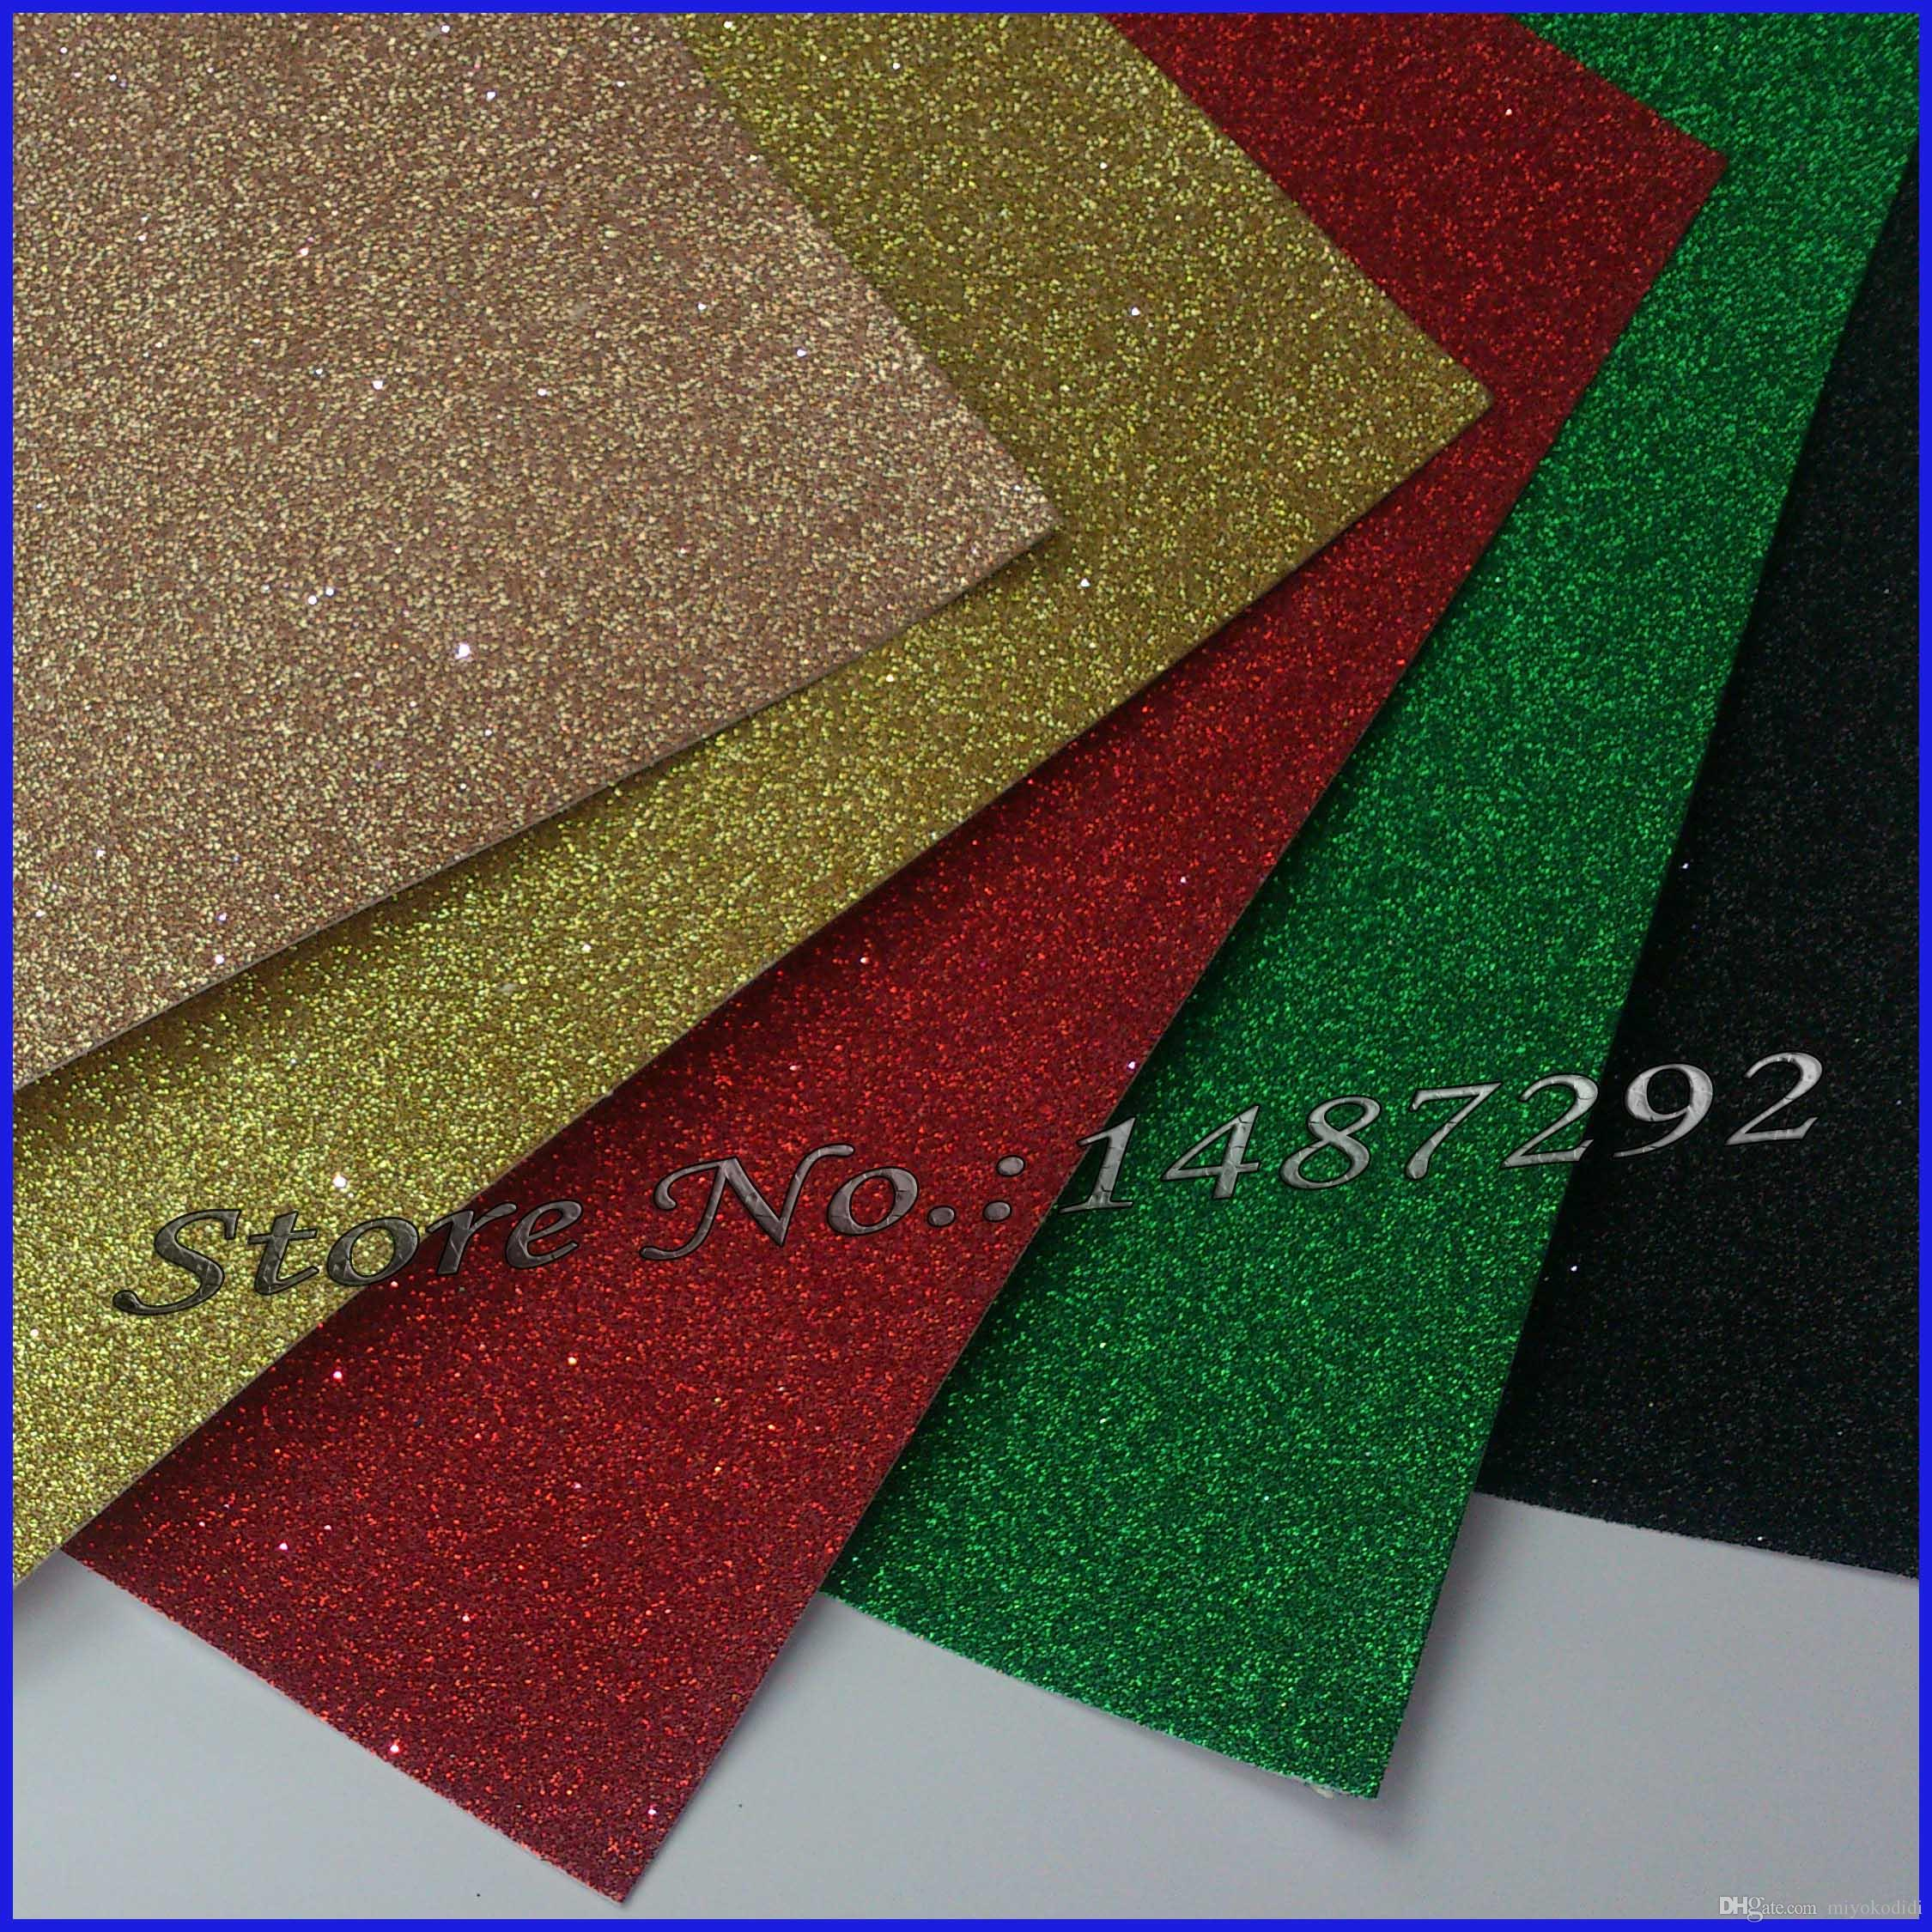 New Arrival:Glitter paper sticker,for Scrapbooking,Photo ablum,DIY Craft decoration,mixed